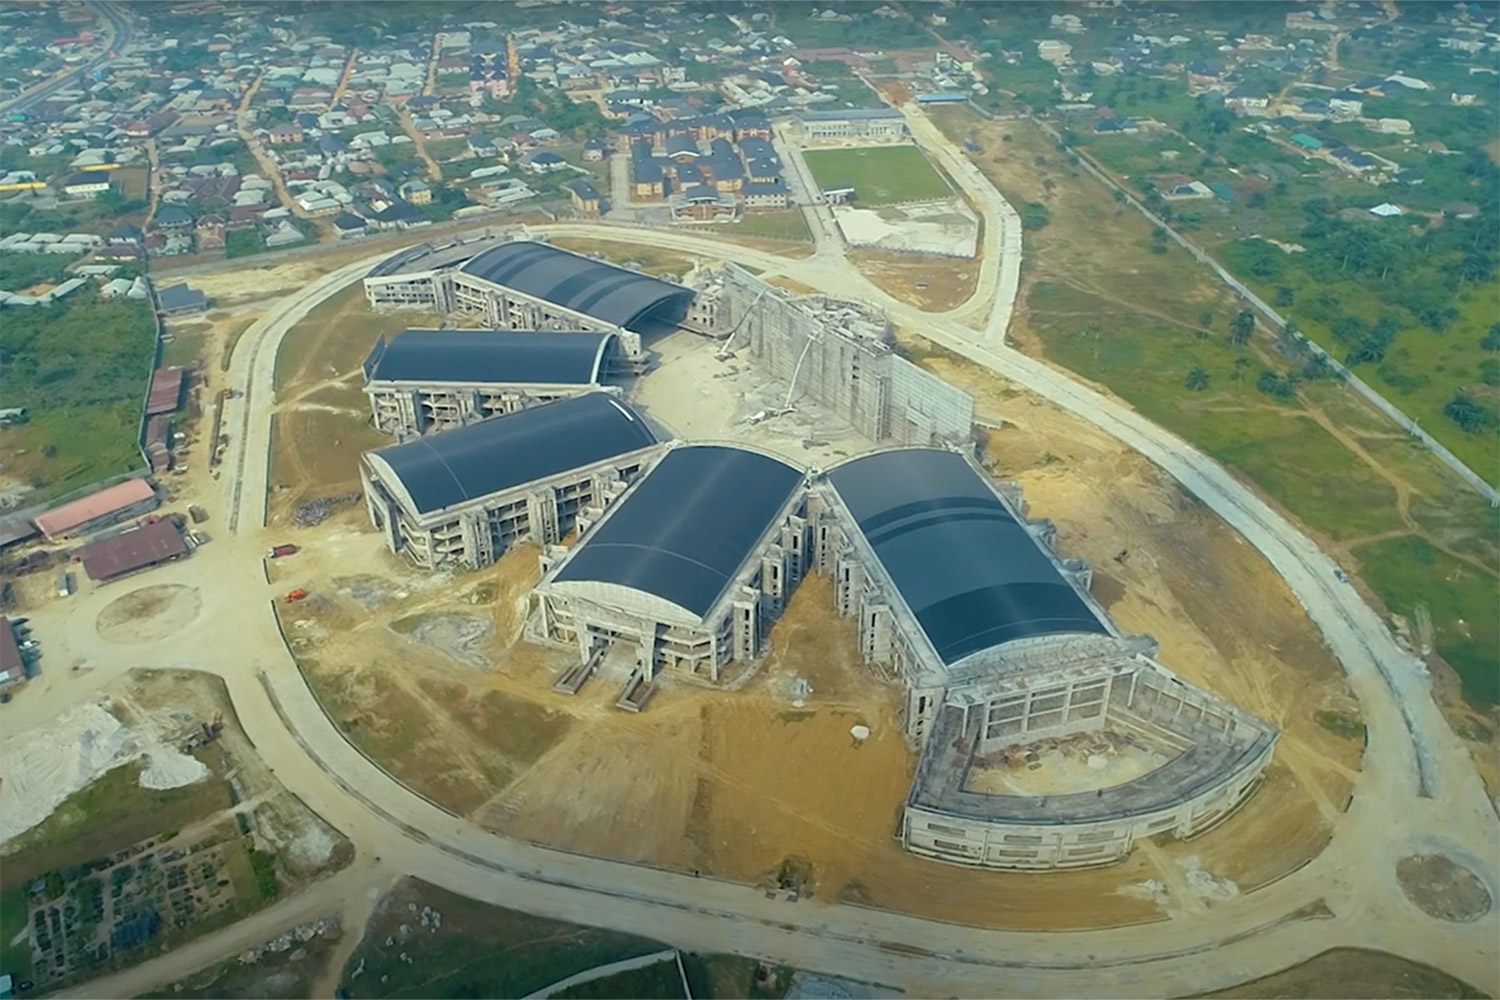 "Bishop David Oyedepo Salvation Ministries ""Hand of God"". WSDG brought to supervise the acoustic design and design professional audio and video production facilities for the worship center. Aerial view 2."